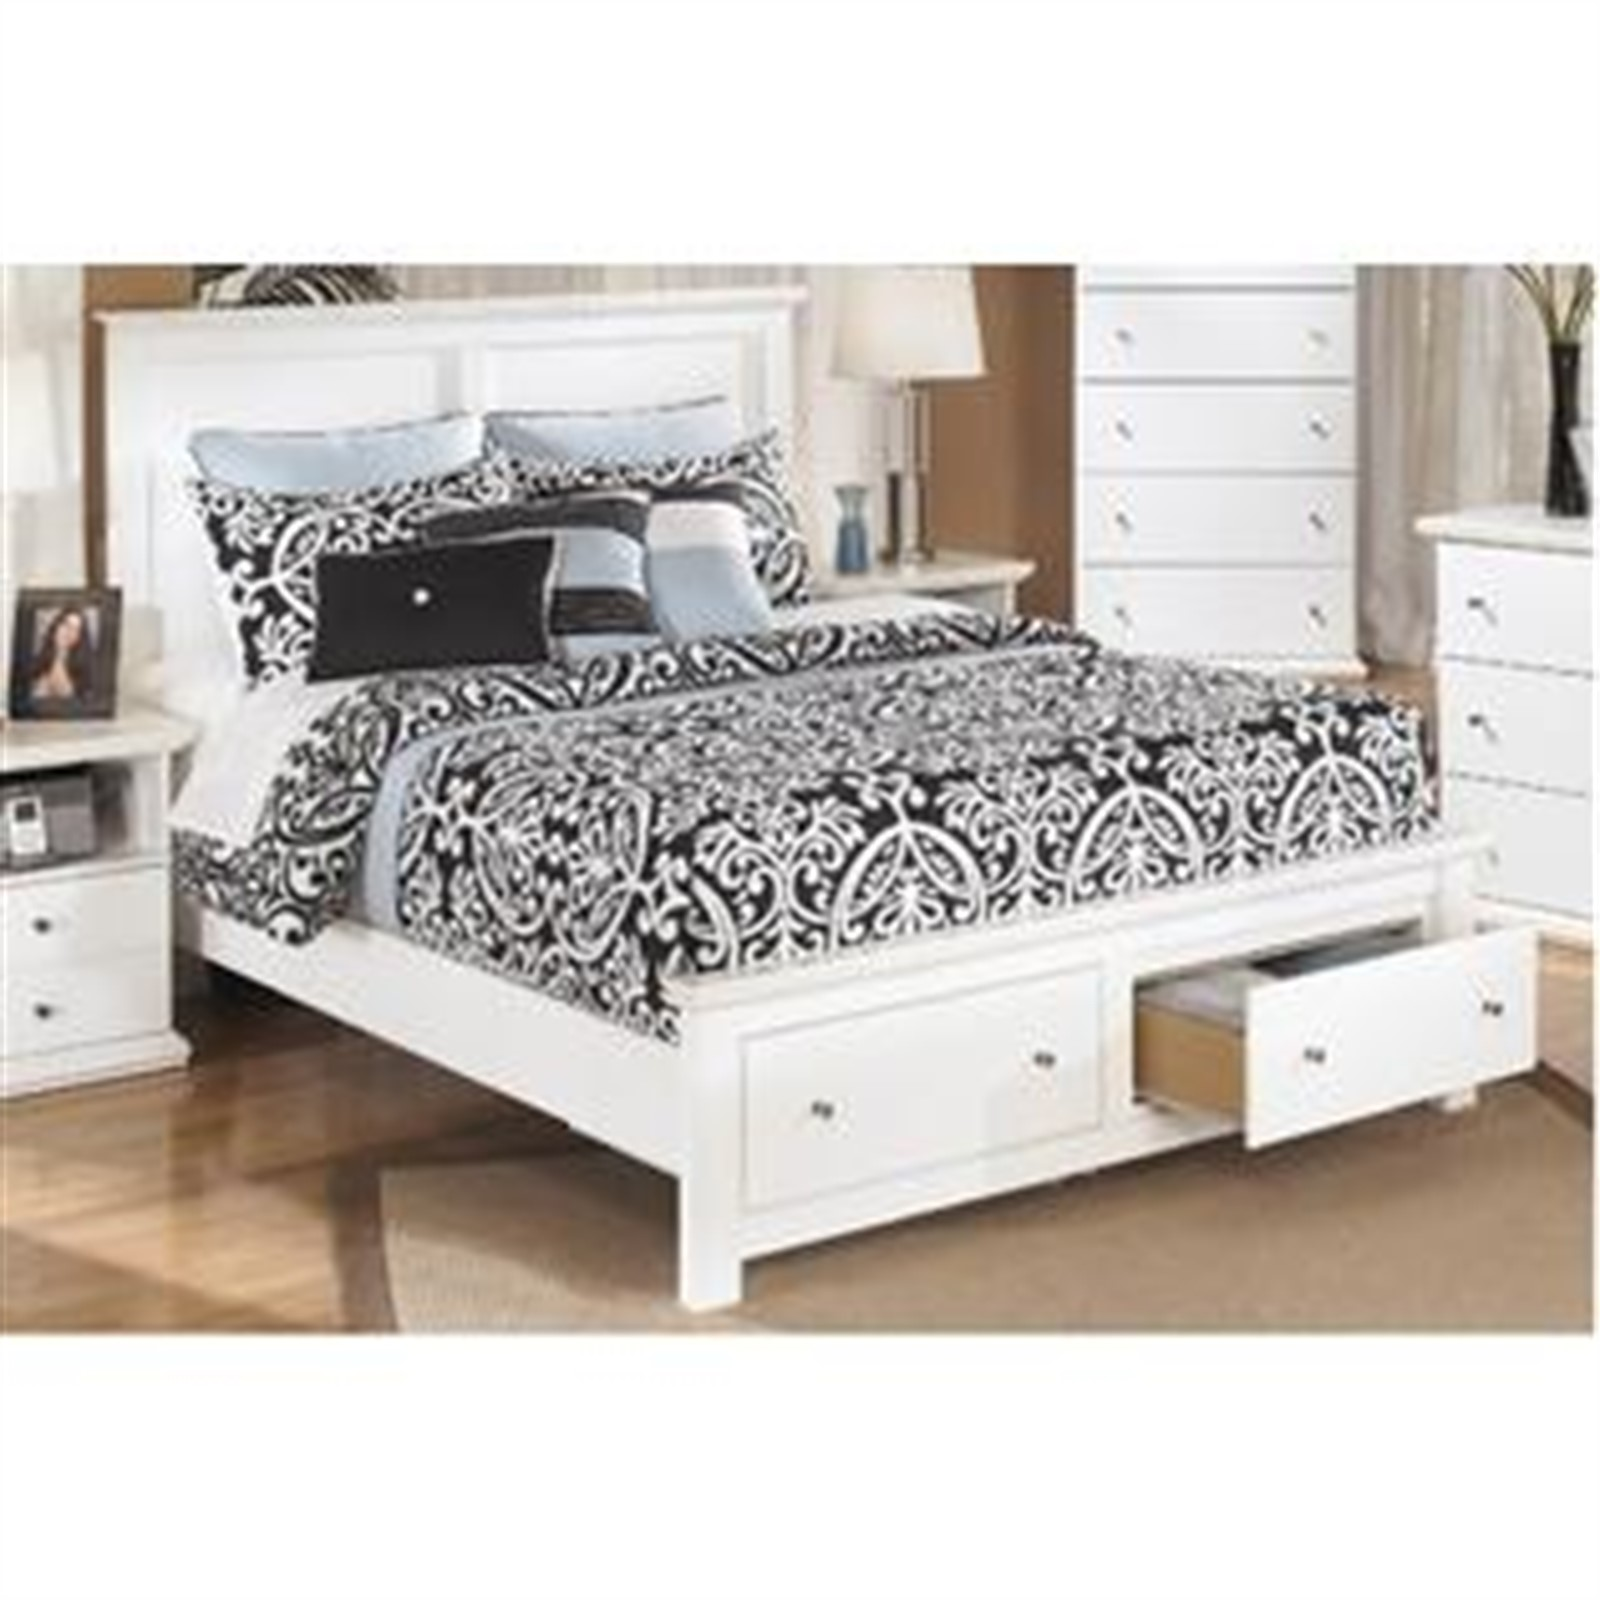 Bostwick Shoals White Queen Bed with Footboard Storage